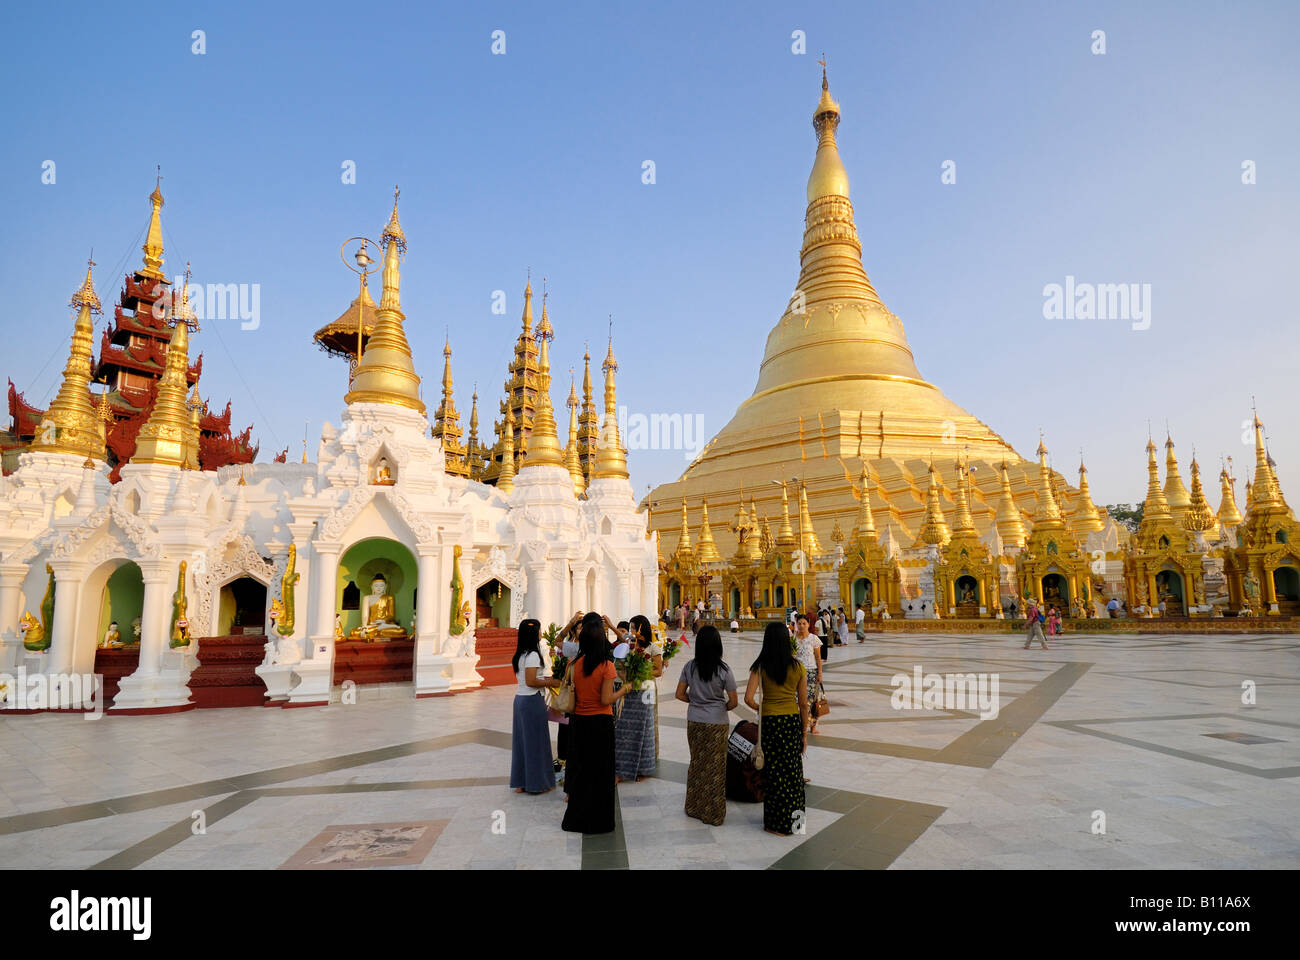 shwedagon pagoda one of the most famous buildings in